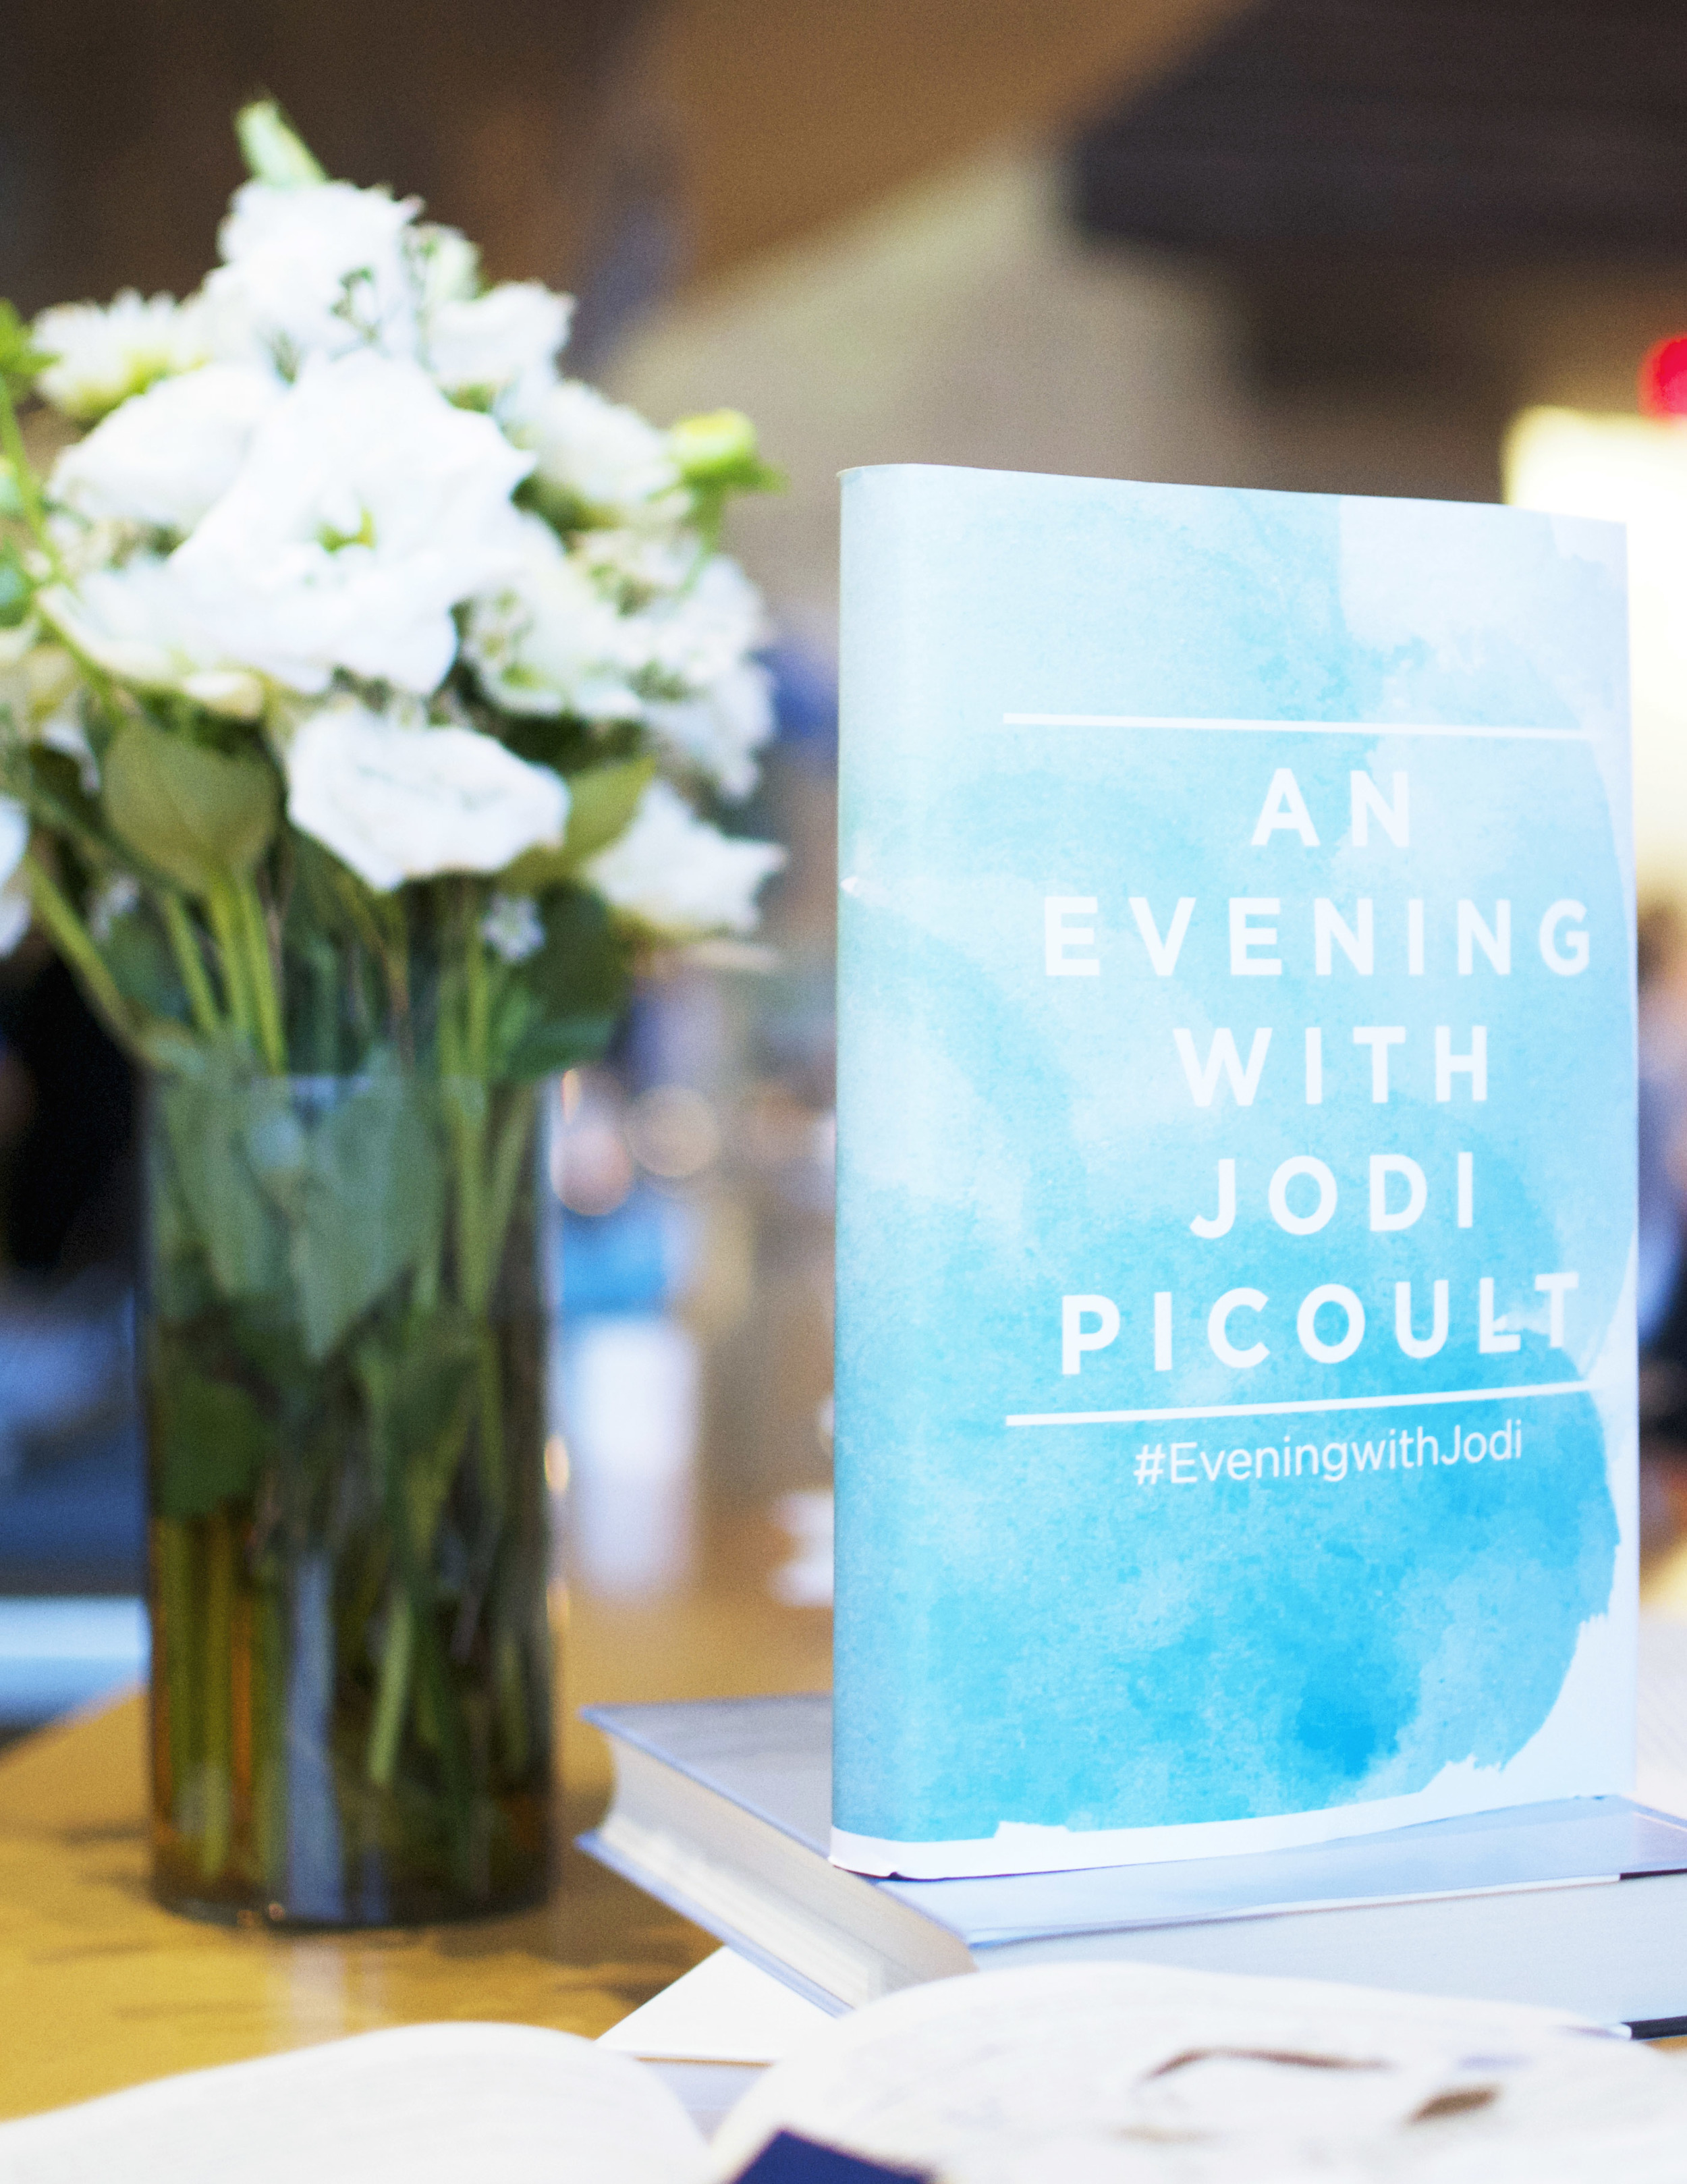 AnEveningWithJodiPicoult05